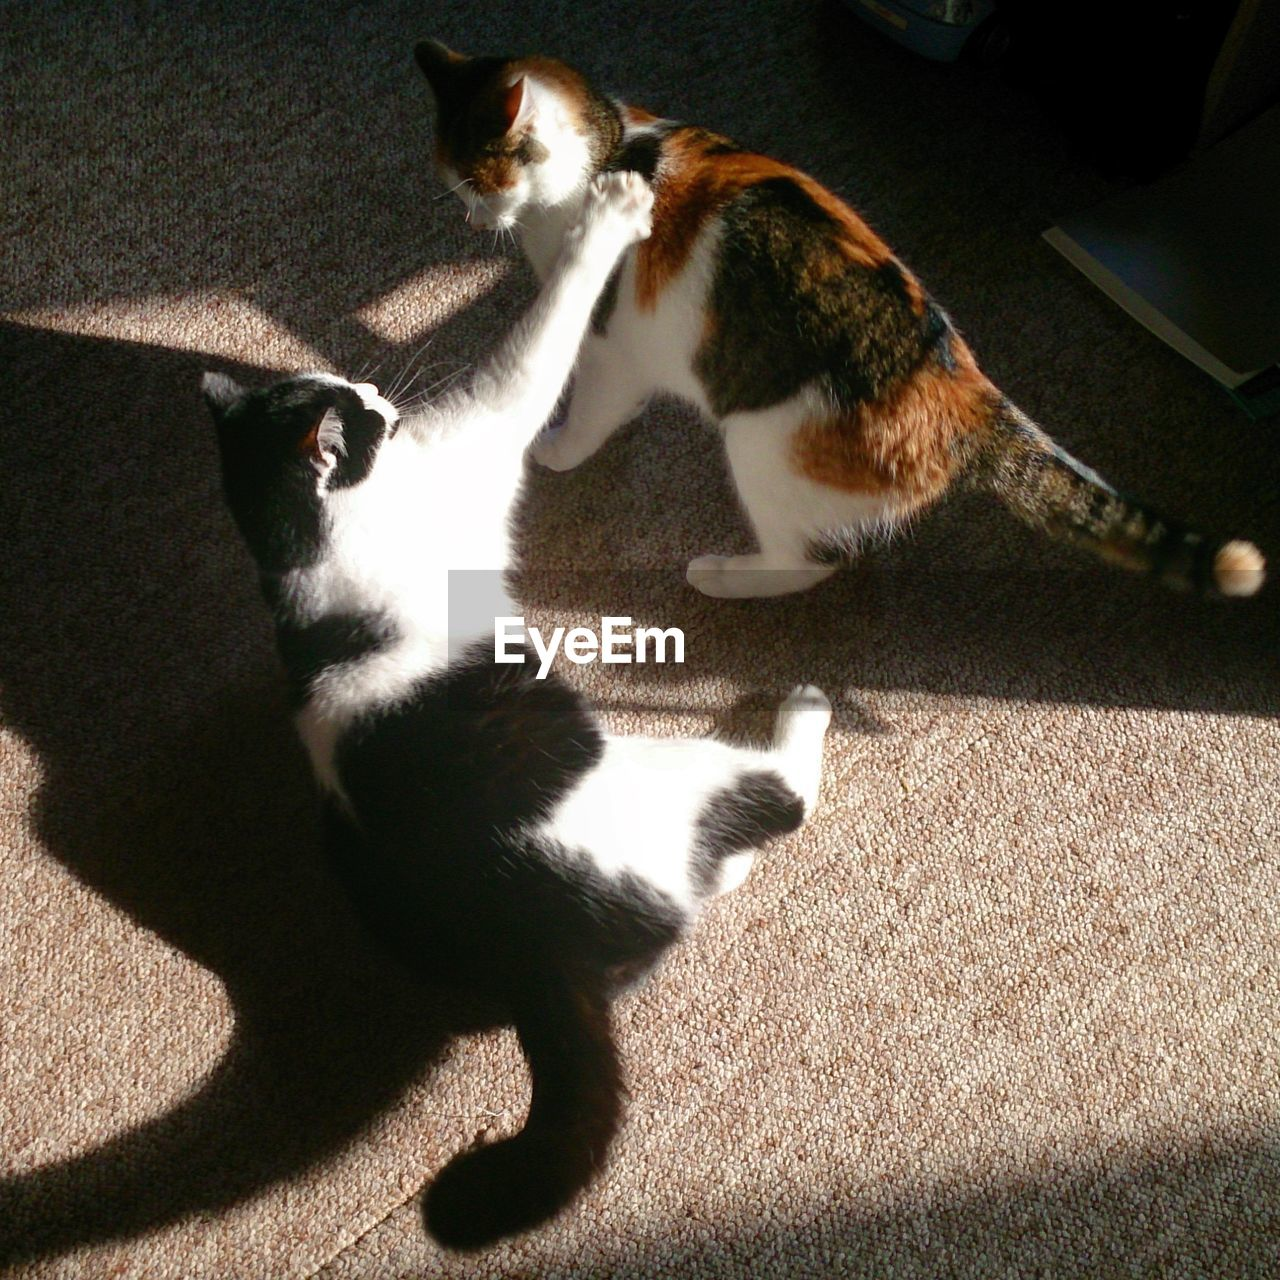 domestic cat, pets, domestic animals, animal themes, cat, mammal, feline, shadow, high angle view, sunlight, indoors, home interior, no people, togetherness, sitting, day, siamese cat, full length